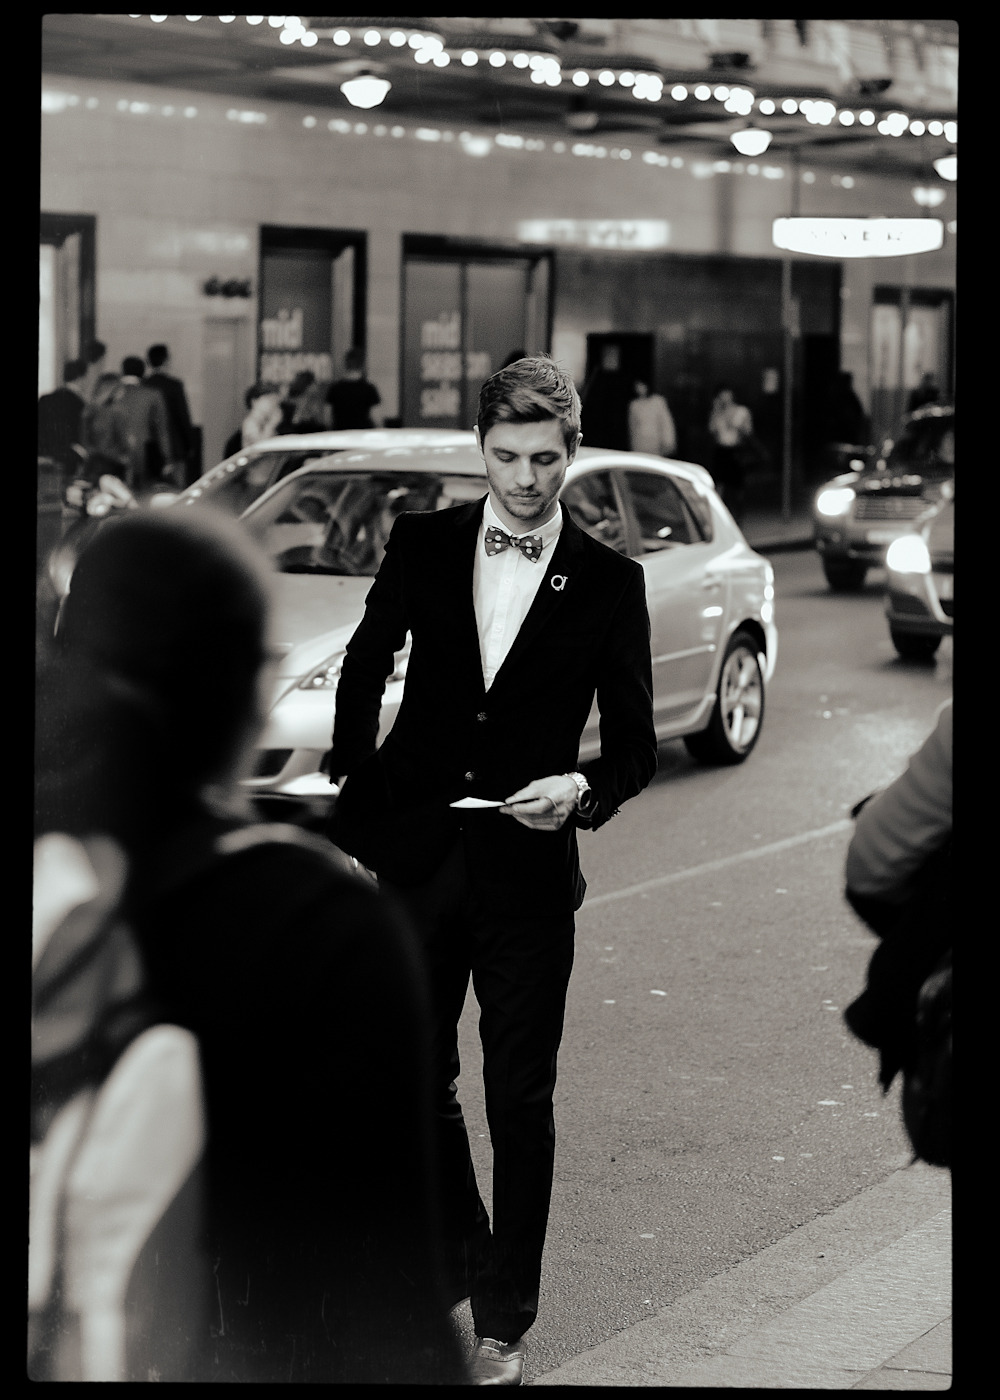 Outside the QT Hotel in Sydney.Similar look: Polka Dot Self Tie Bow Tie by Brent Morgan.